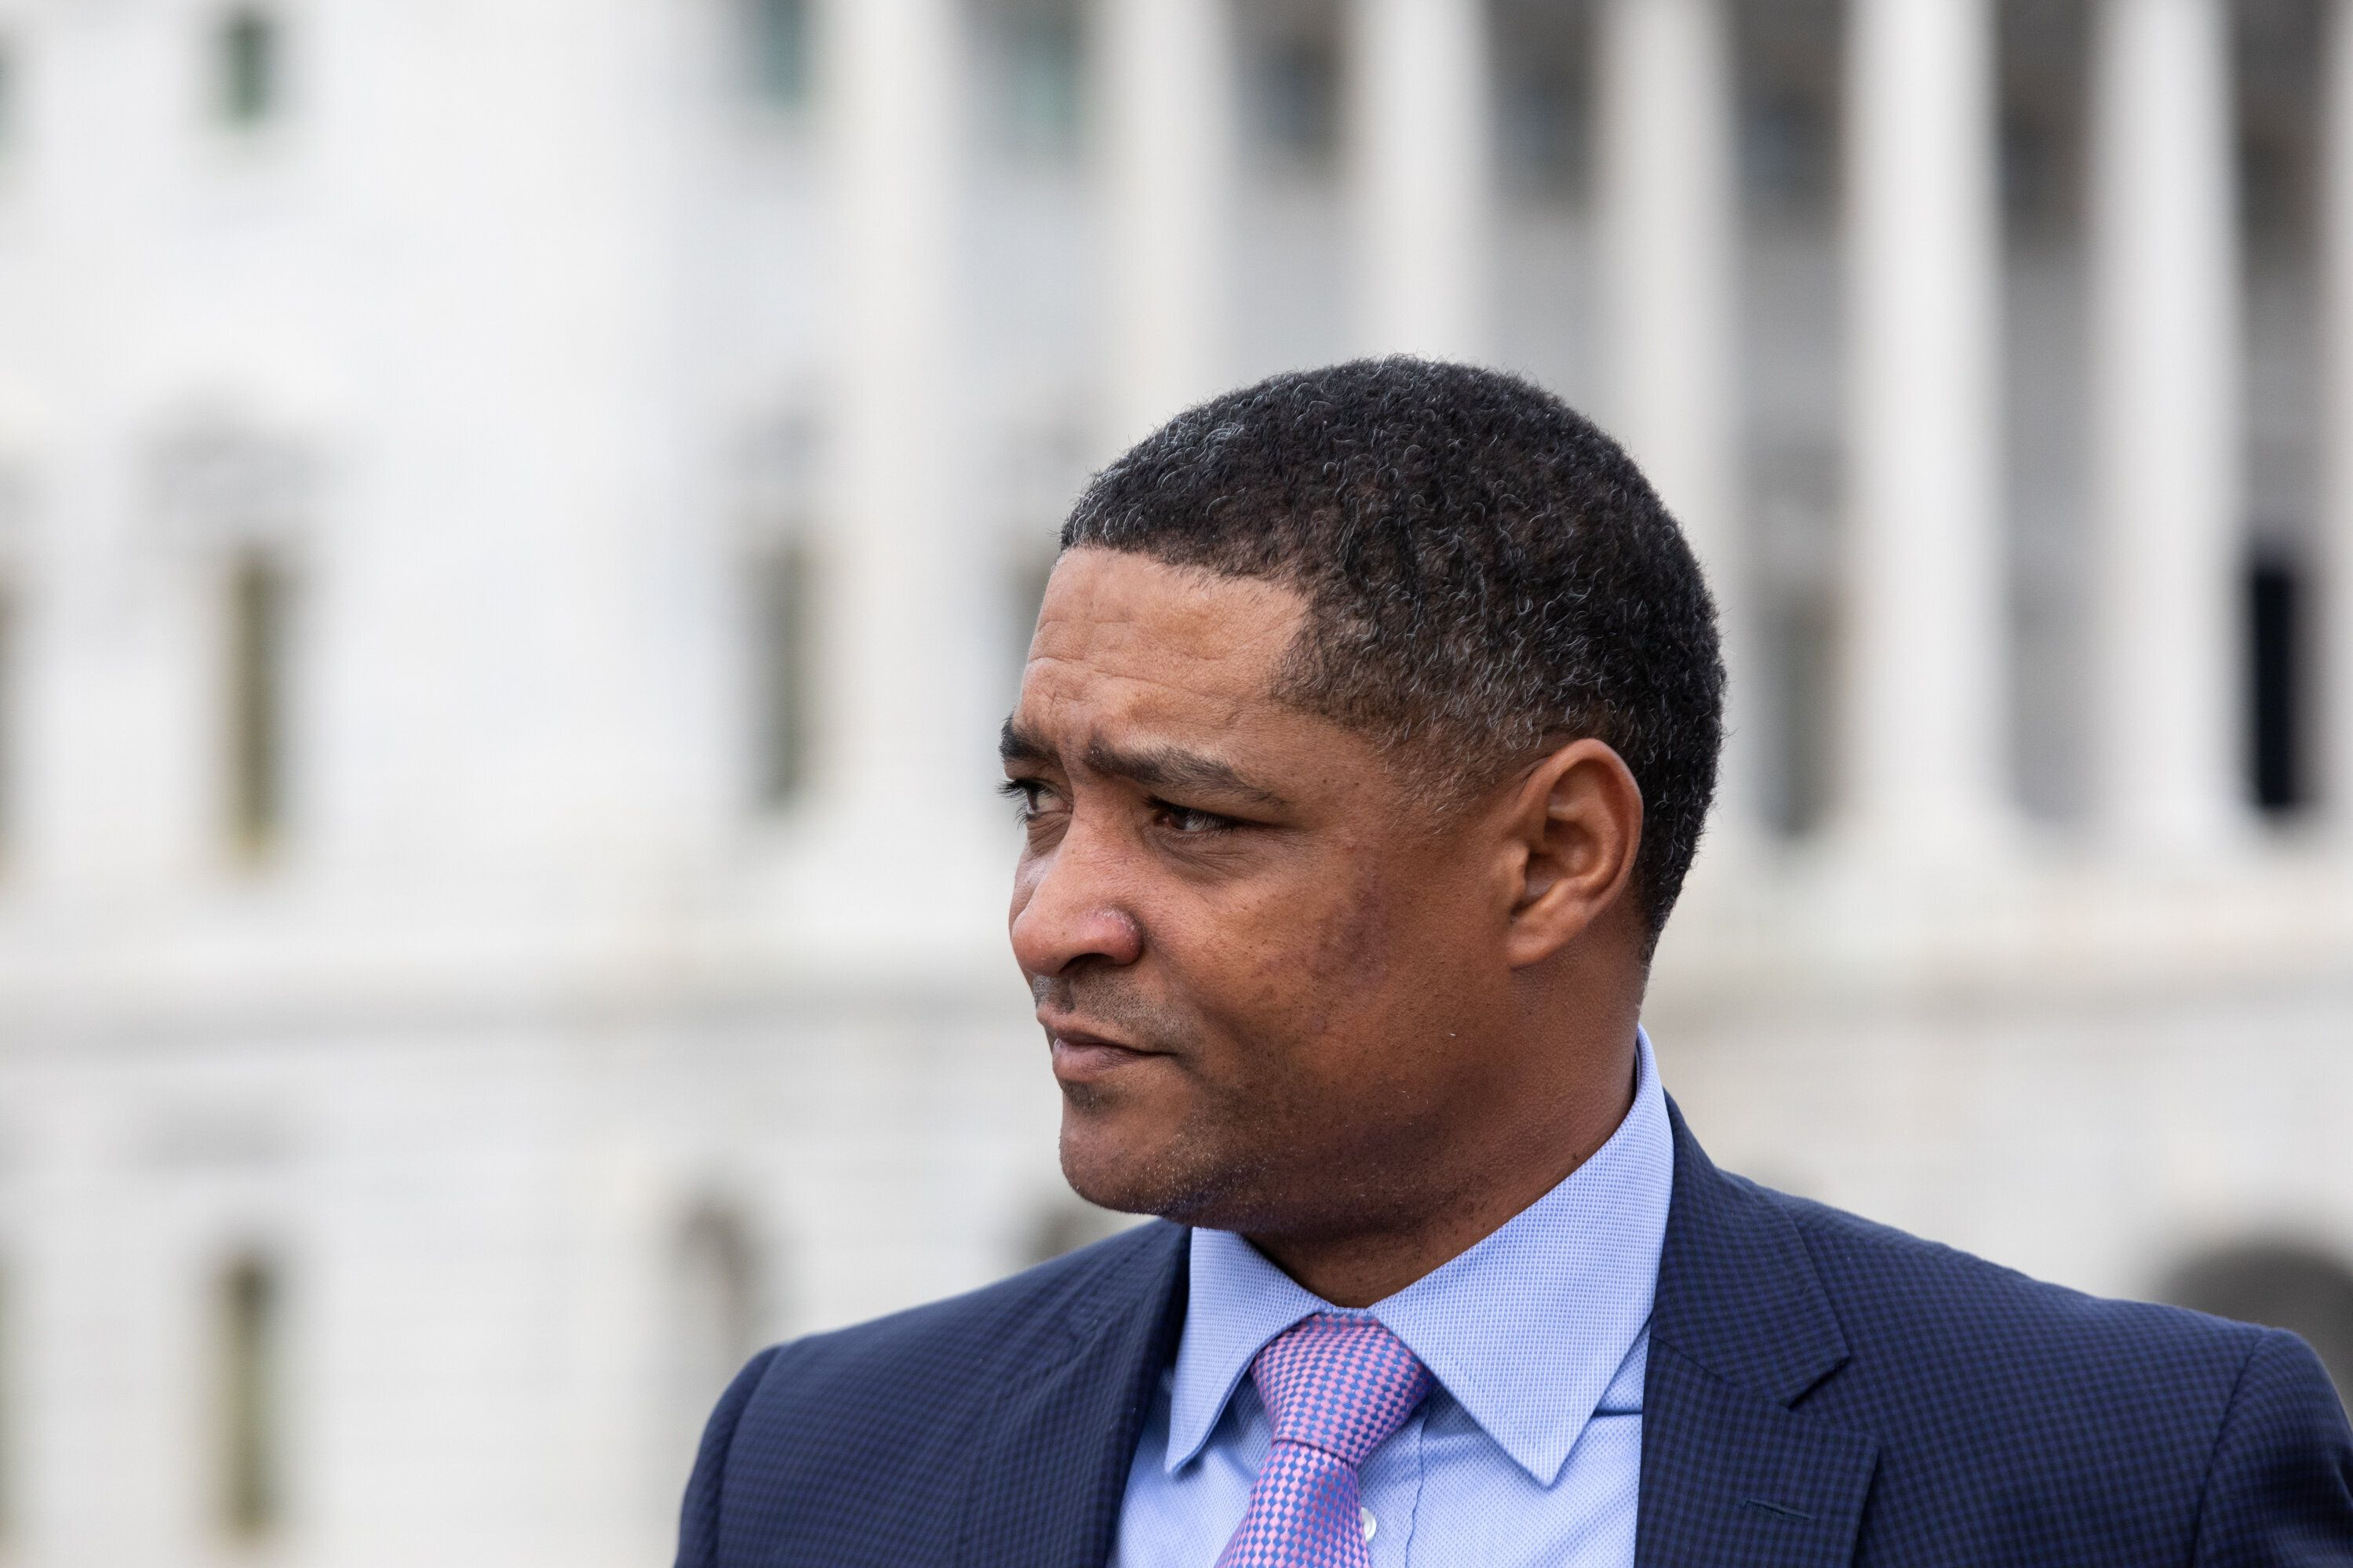 """Cedric Richmond said the White House is not """"setting red lines in public"""" on police reform, but wants to see a """"meaningful bi"""